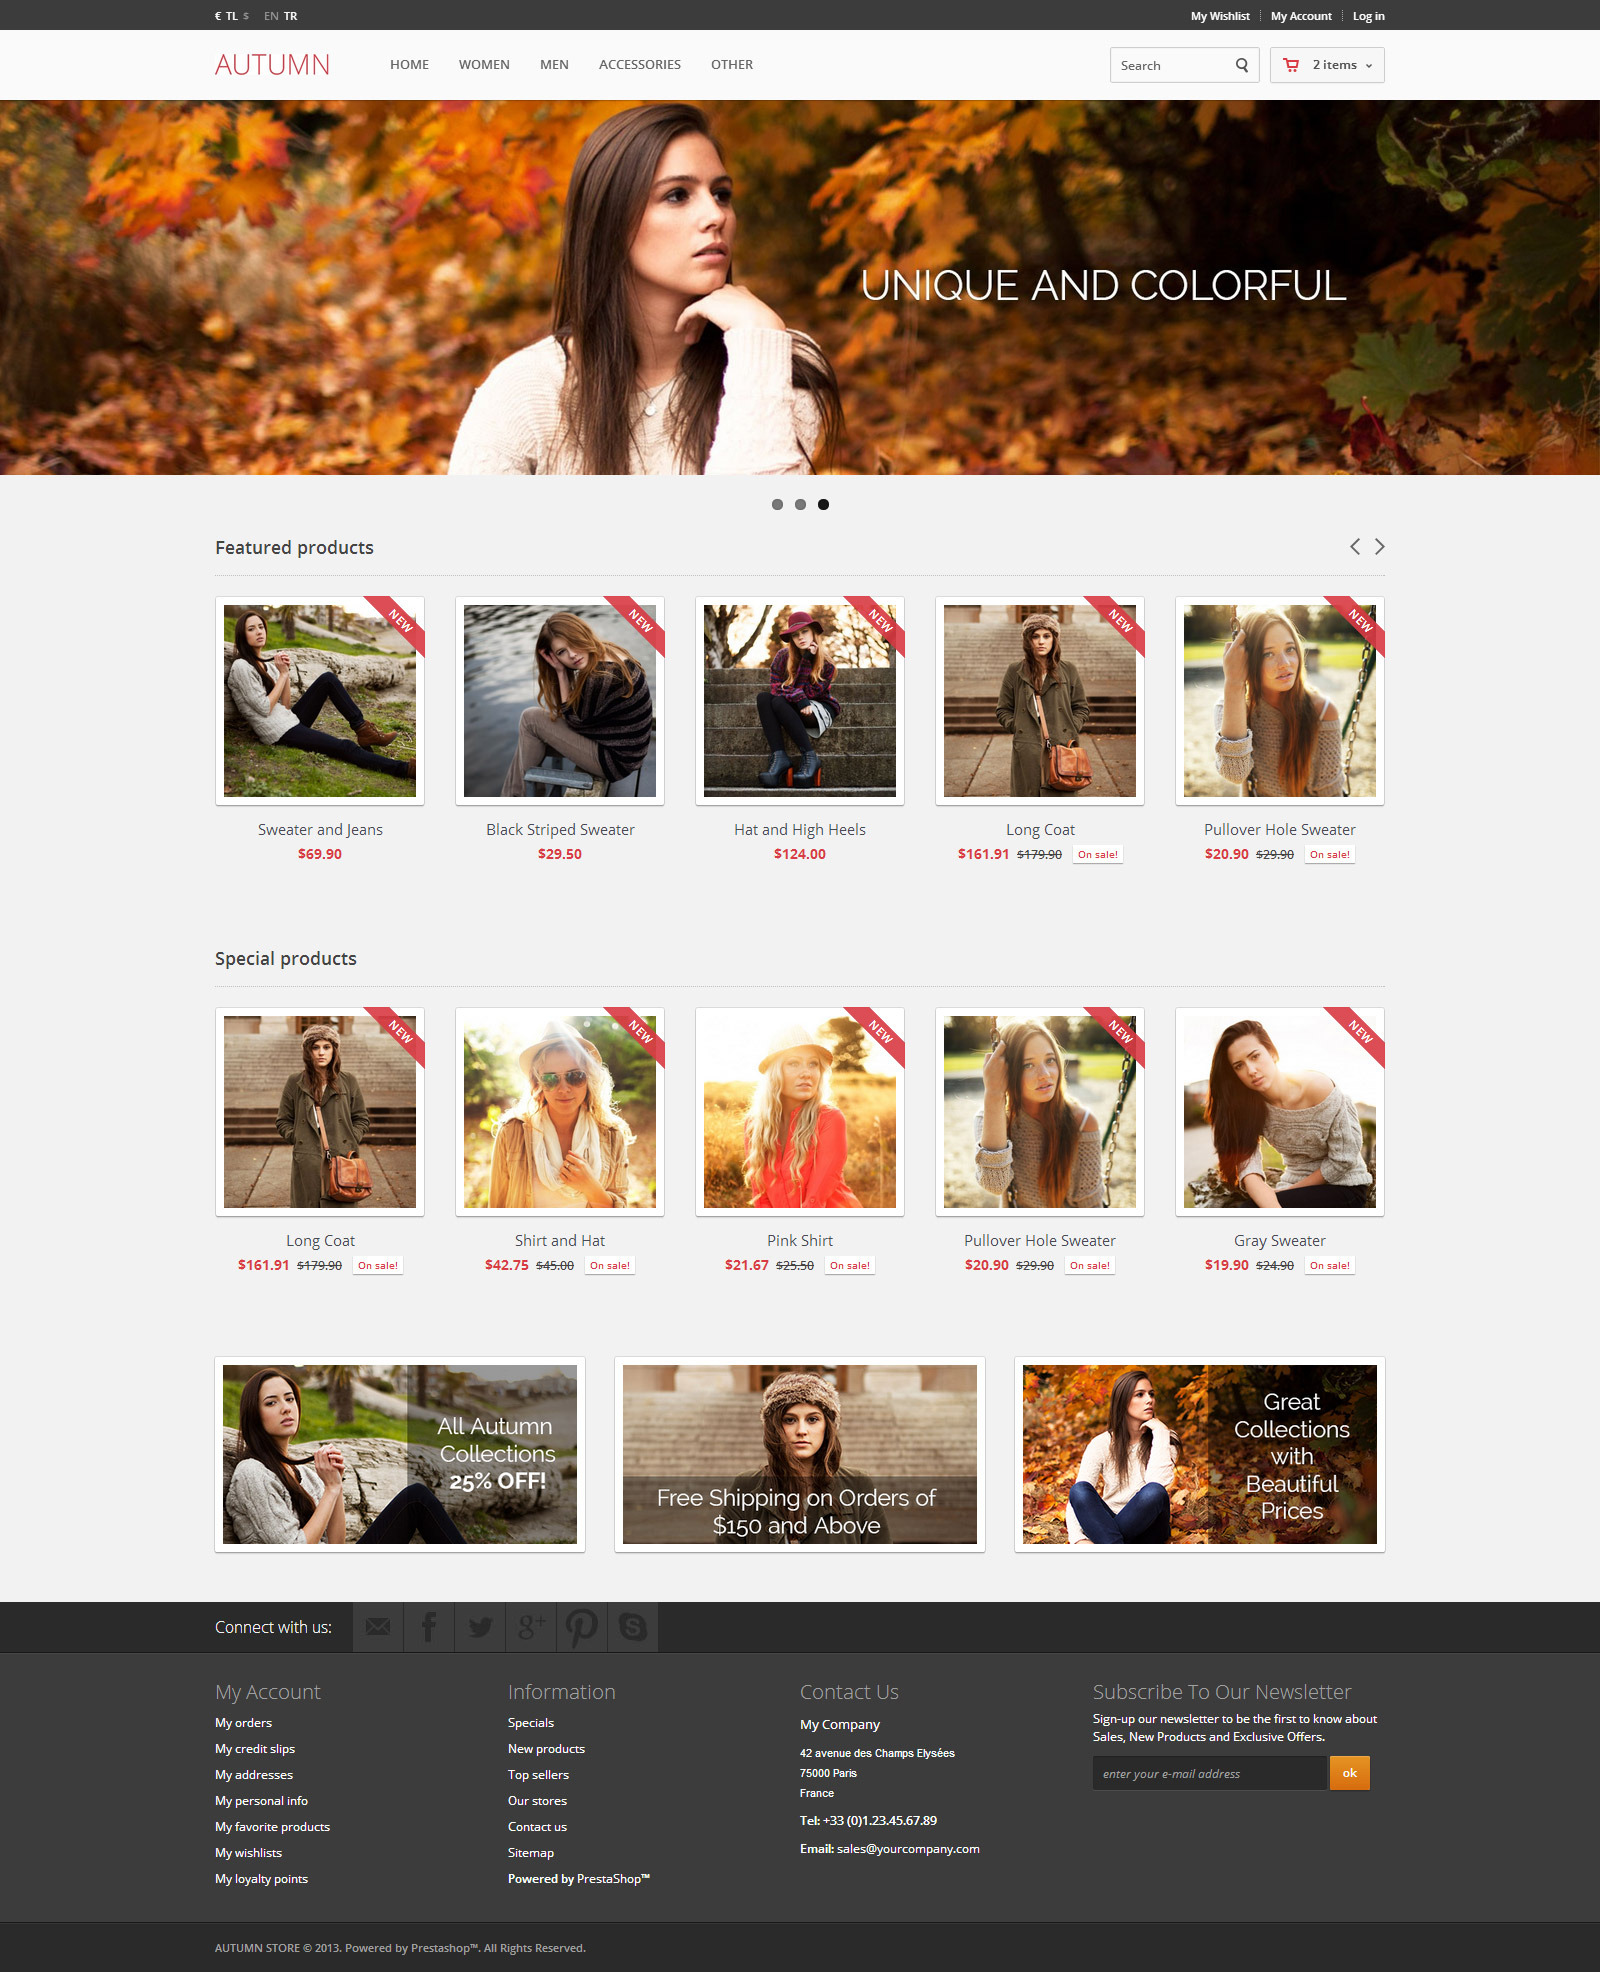 Autumn - Free eCommerce Theme